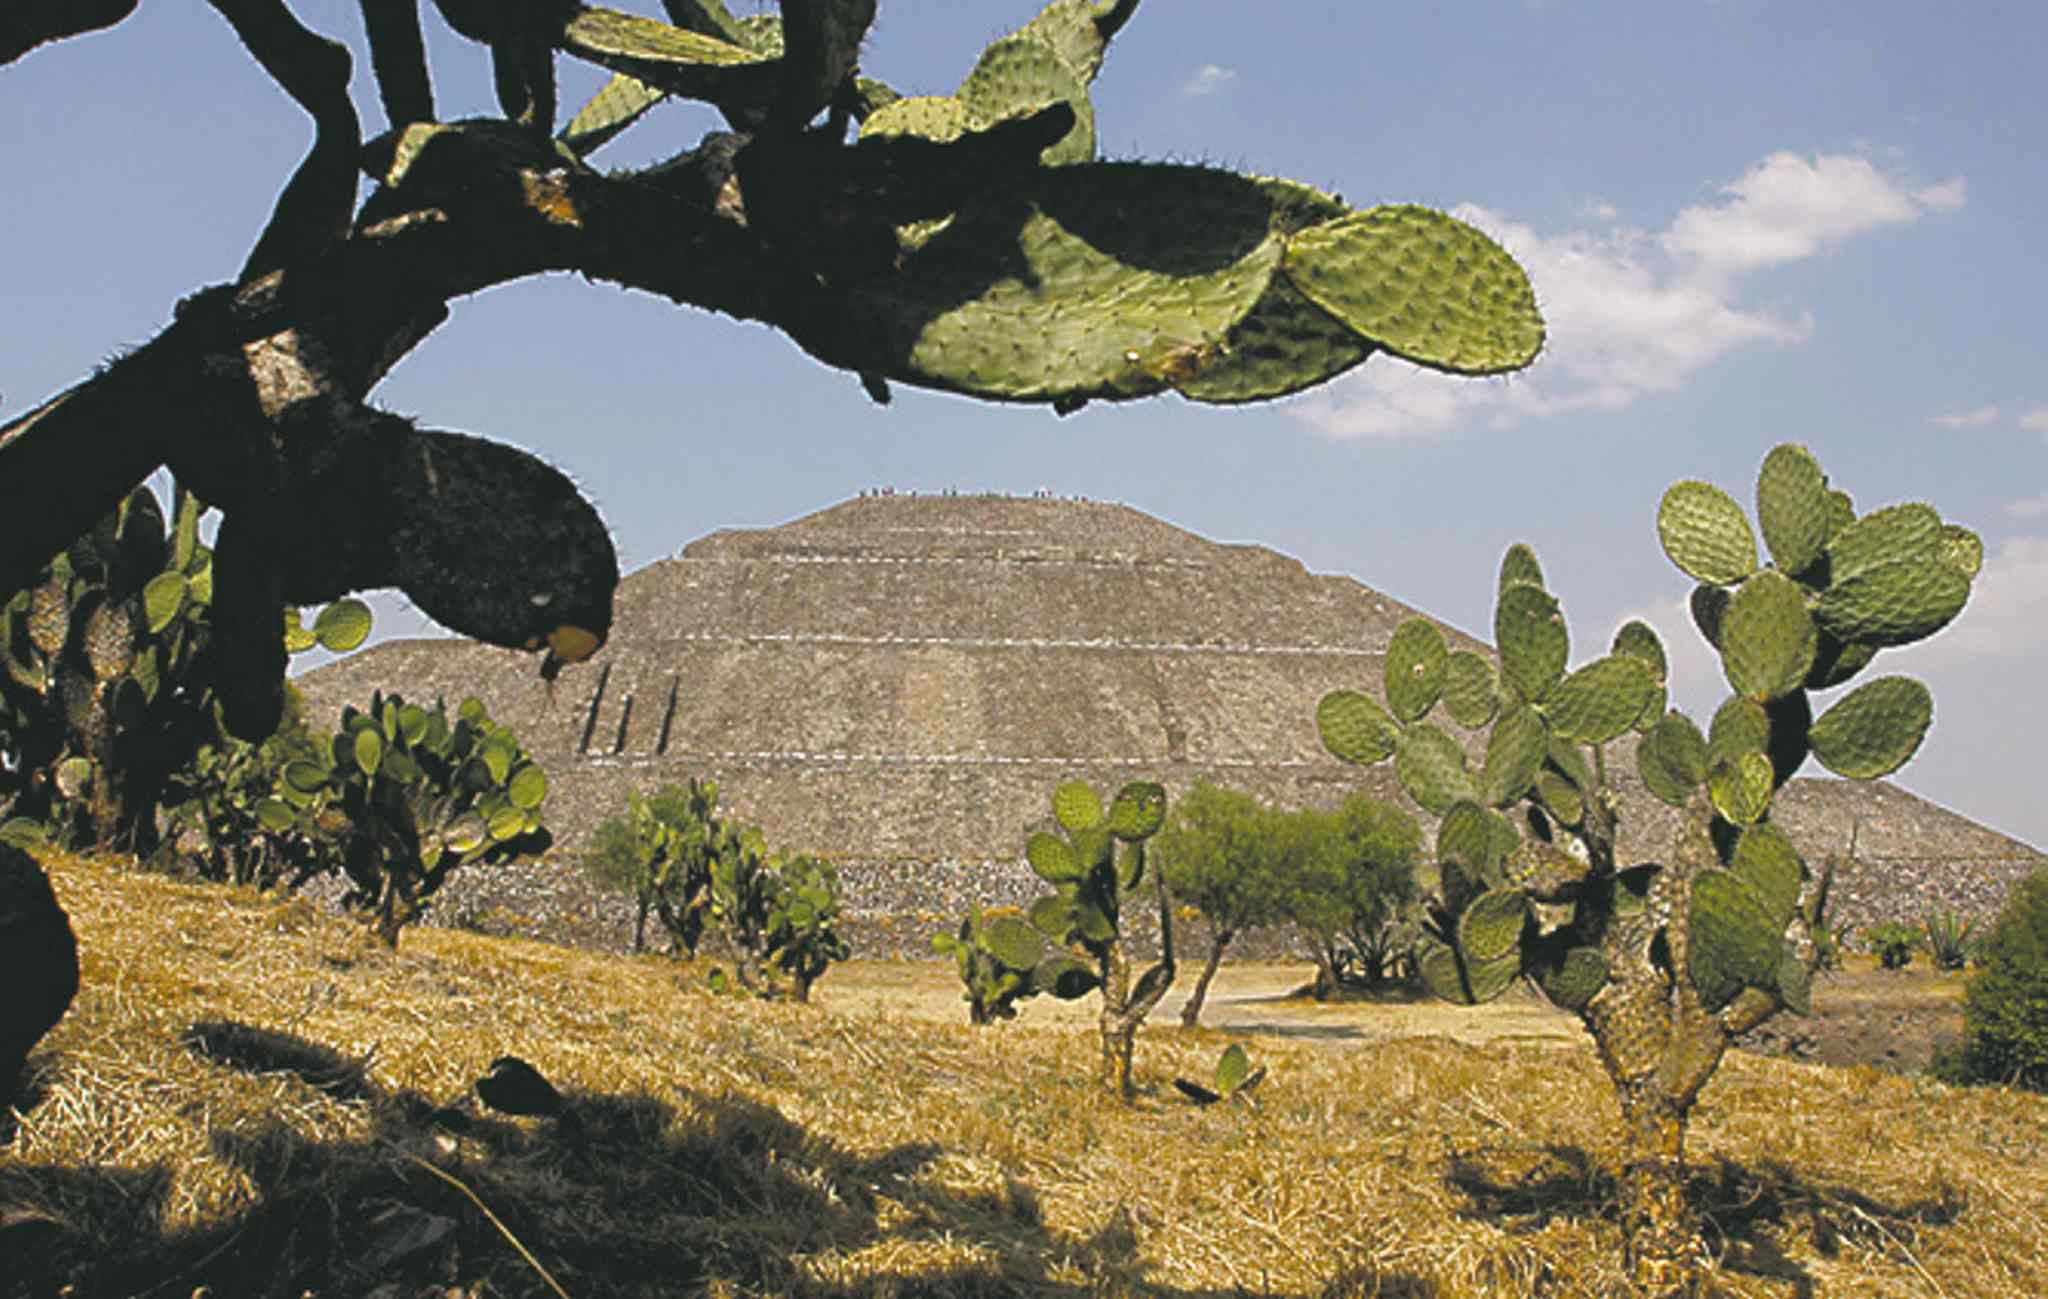 Pyramid of the Sun at the archaeological site of Teotihuacan.